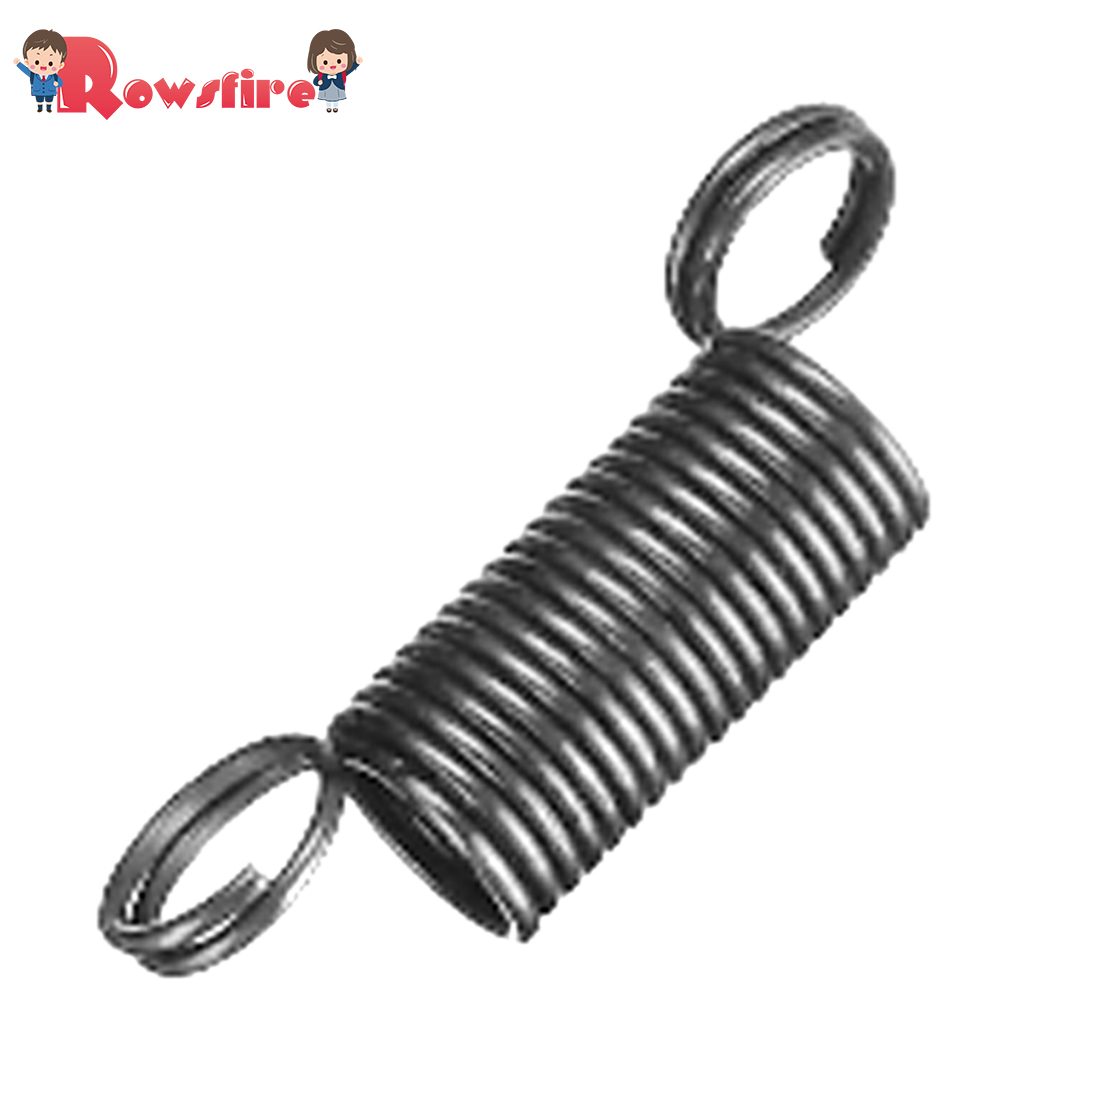 100PCS High Quality DIY Stainless Steel Enhanced Tappet Spring For JM Gen.8 M4 Gearbox Gun Toy Parts Hot Sale - Silver